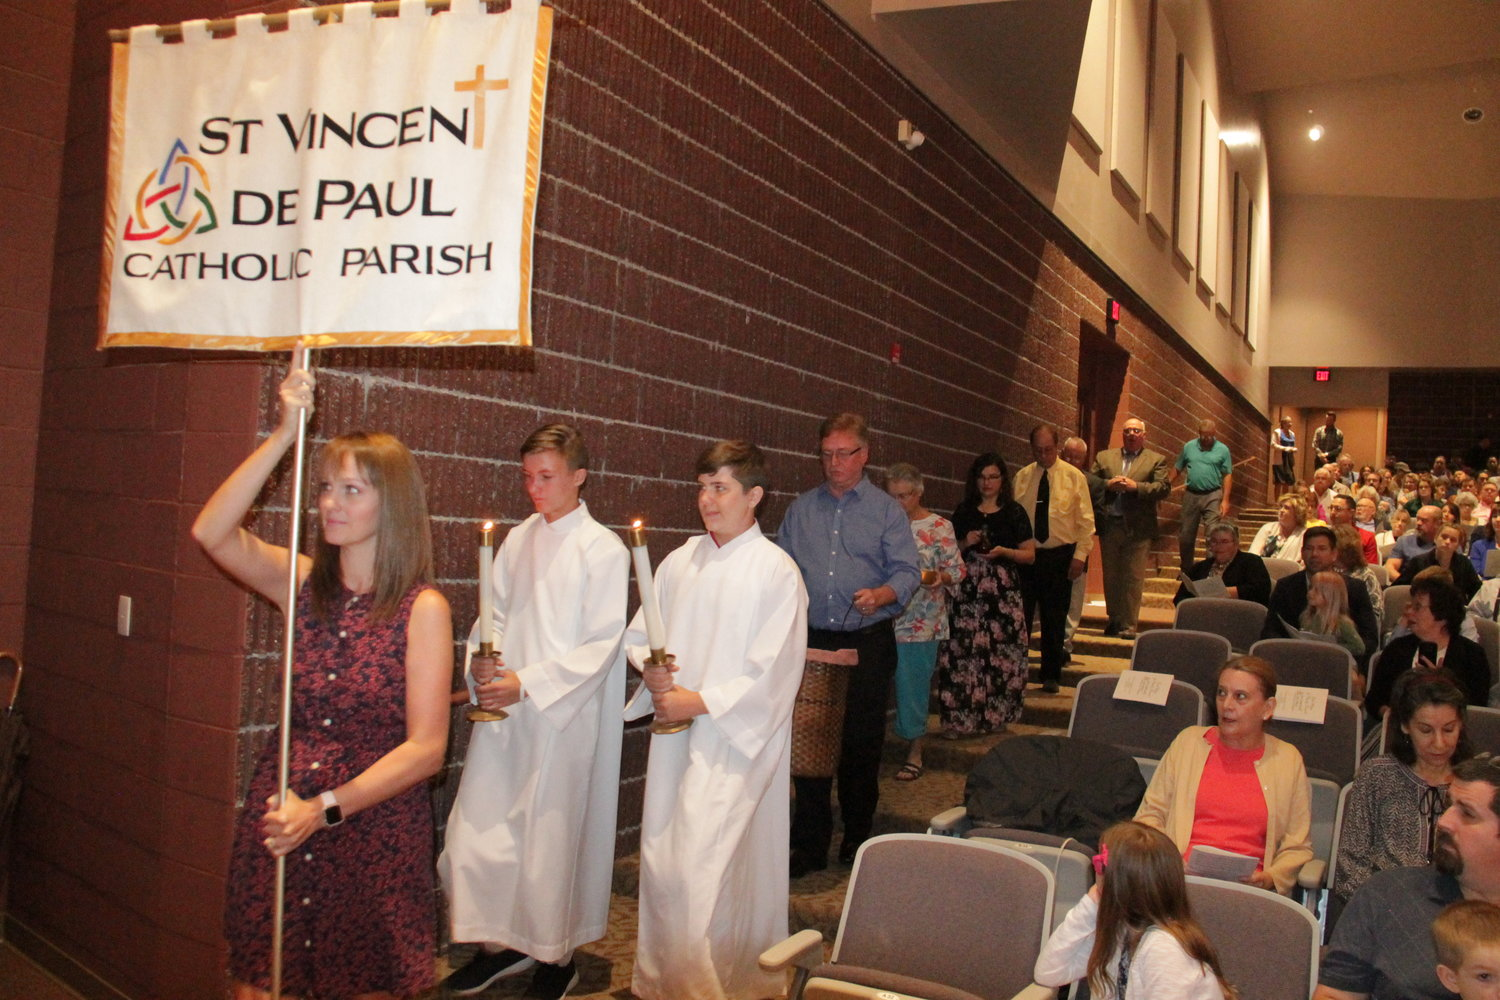 Parishioner Katelin Hladik presents the banner for the parish at the front of the offertory procession.